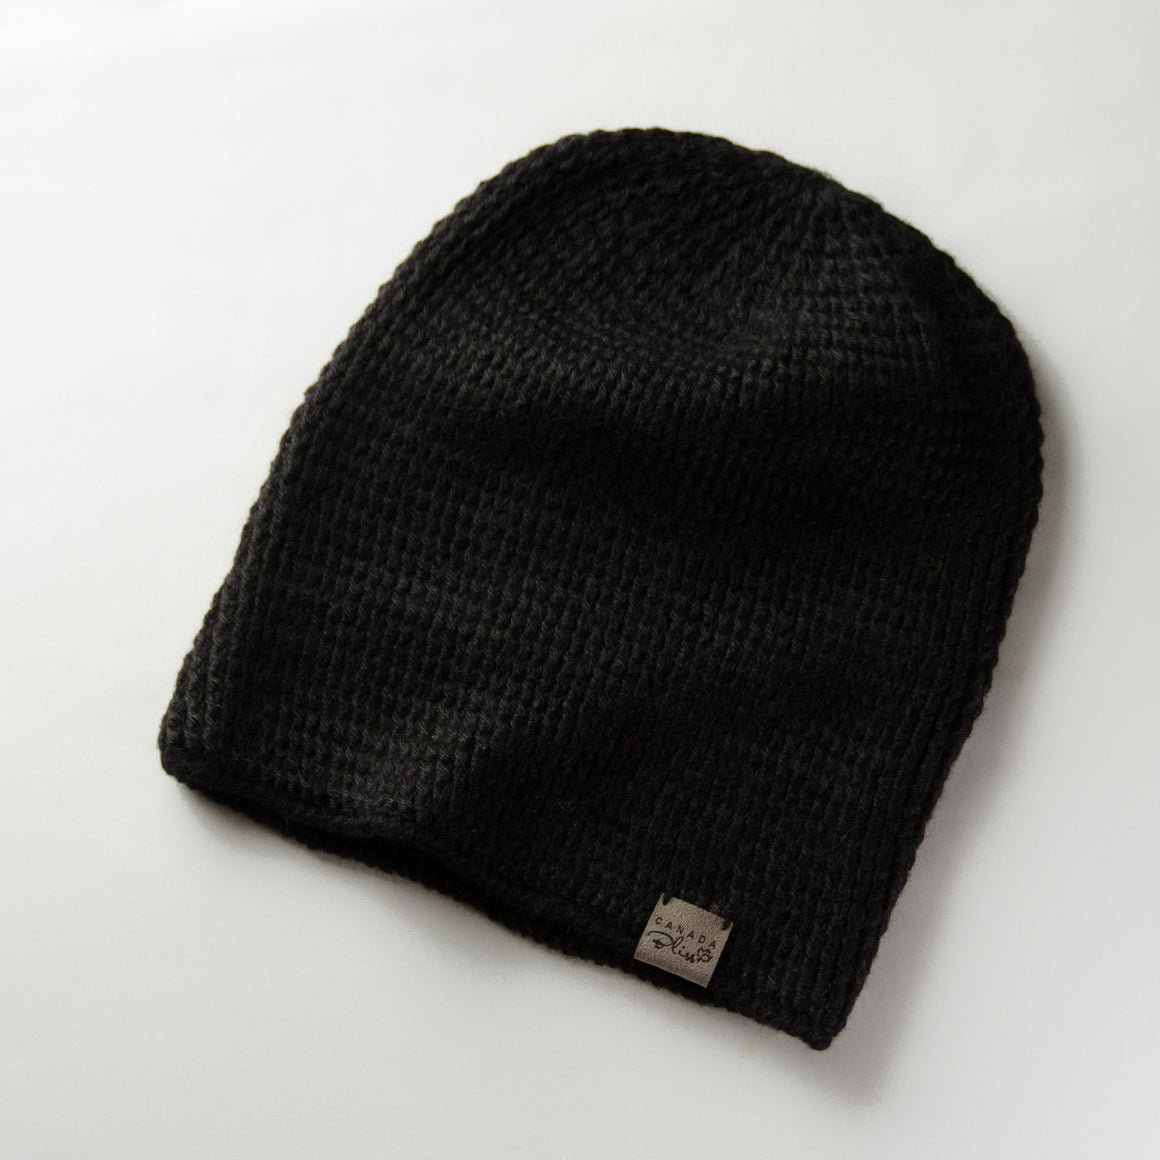 Fundamental Pom Pom Hat Toque | Black Alpaca | Fur Pom Pom